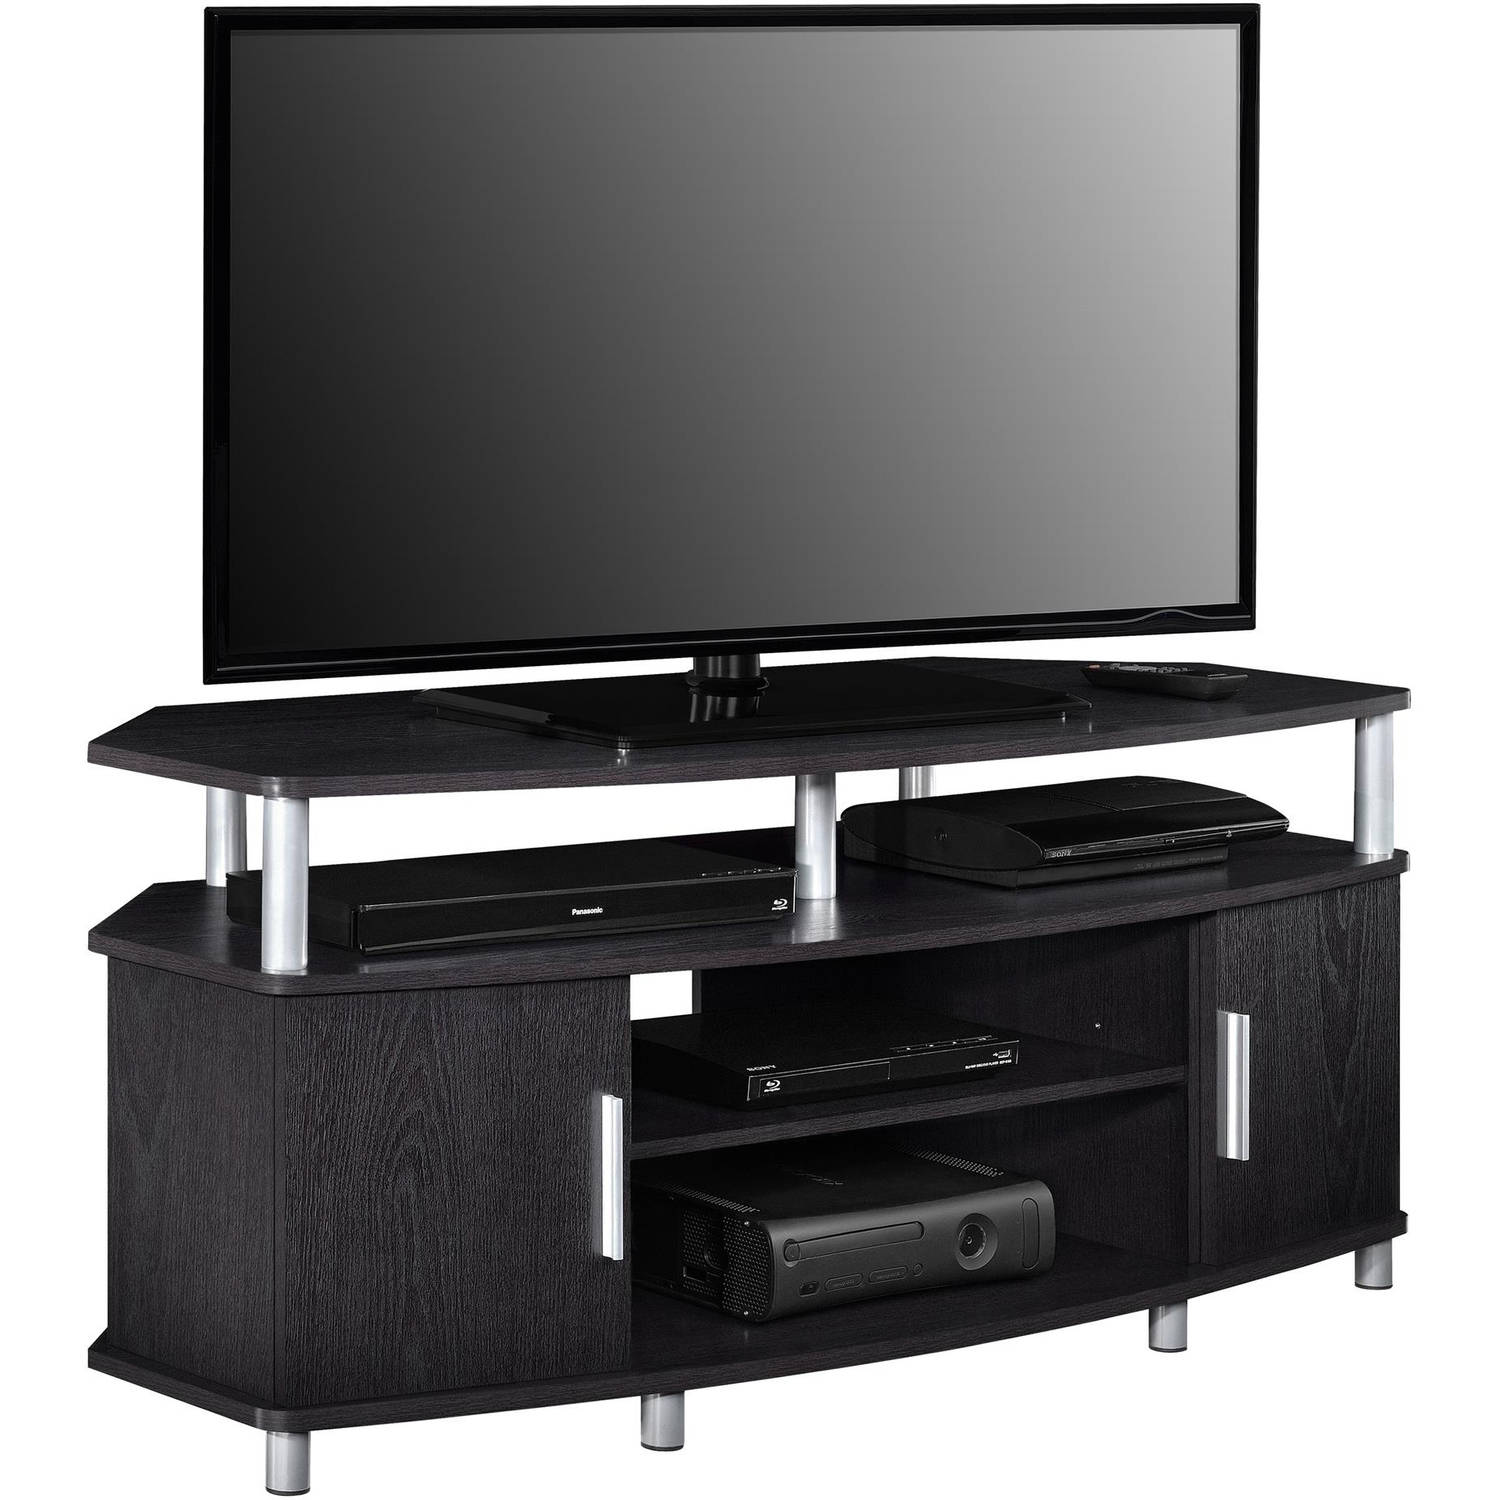 Ameriwood Home Carson Corner Tv Stand For Tvs Up To 50 Wide Black Cherry